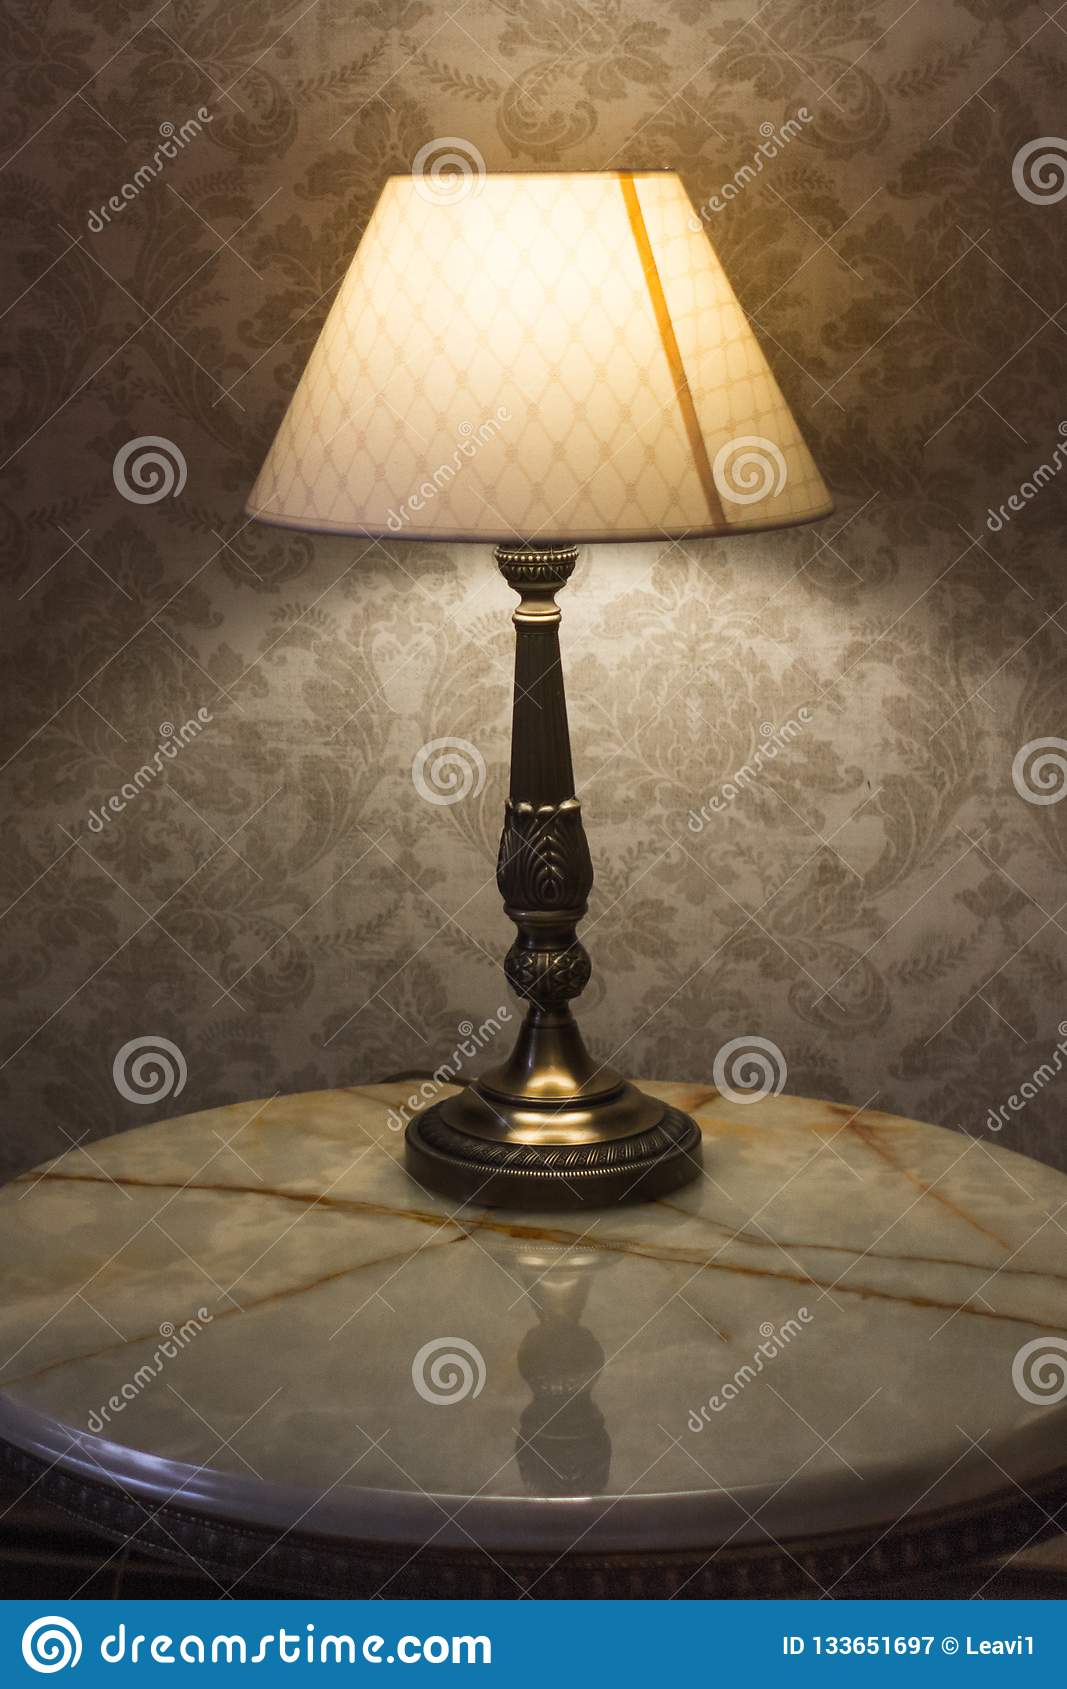 Dim Lights In The Bedroom From A Desk Lamp Stock Image Image Of Retro Furniture 133651697